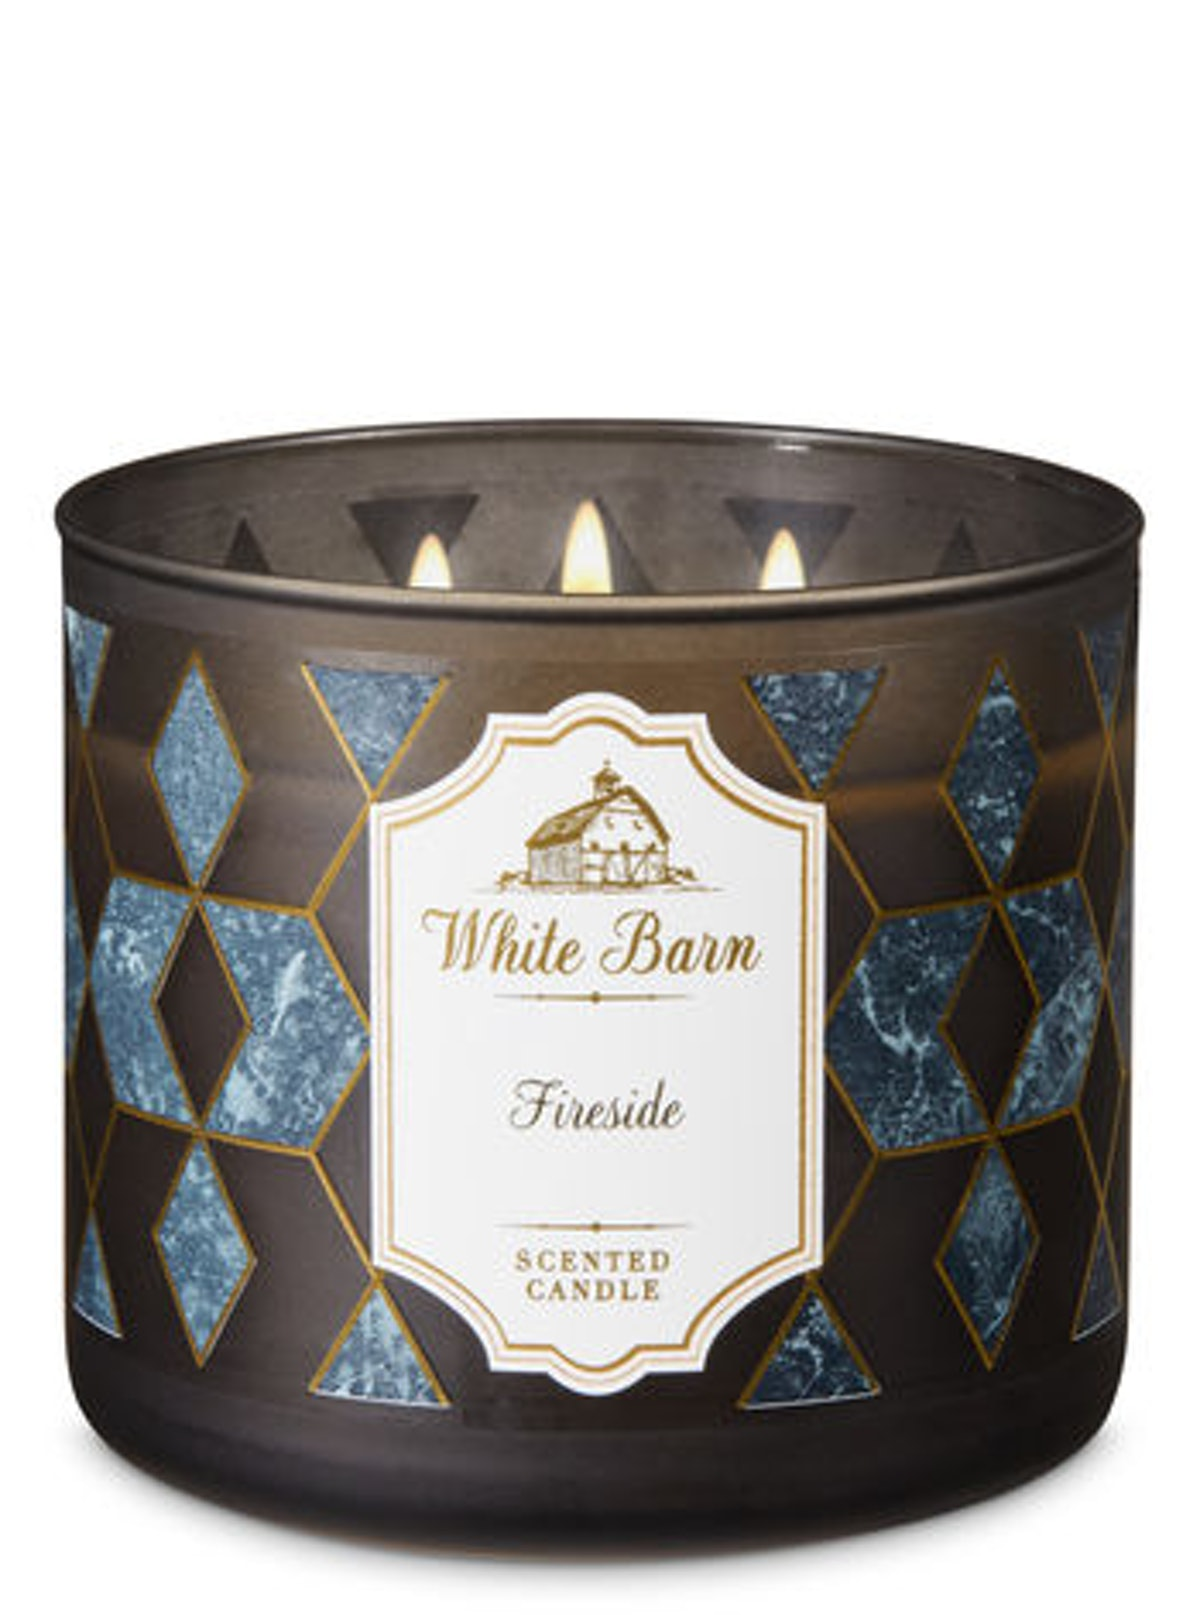 Fireside 3-Wick Candle